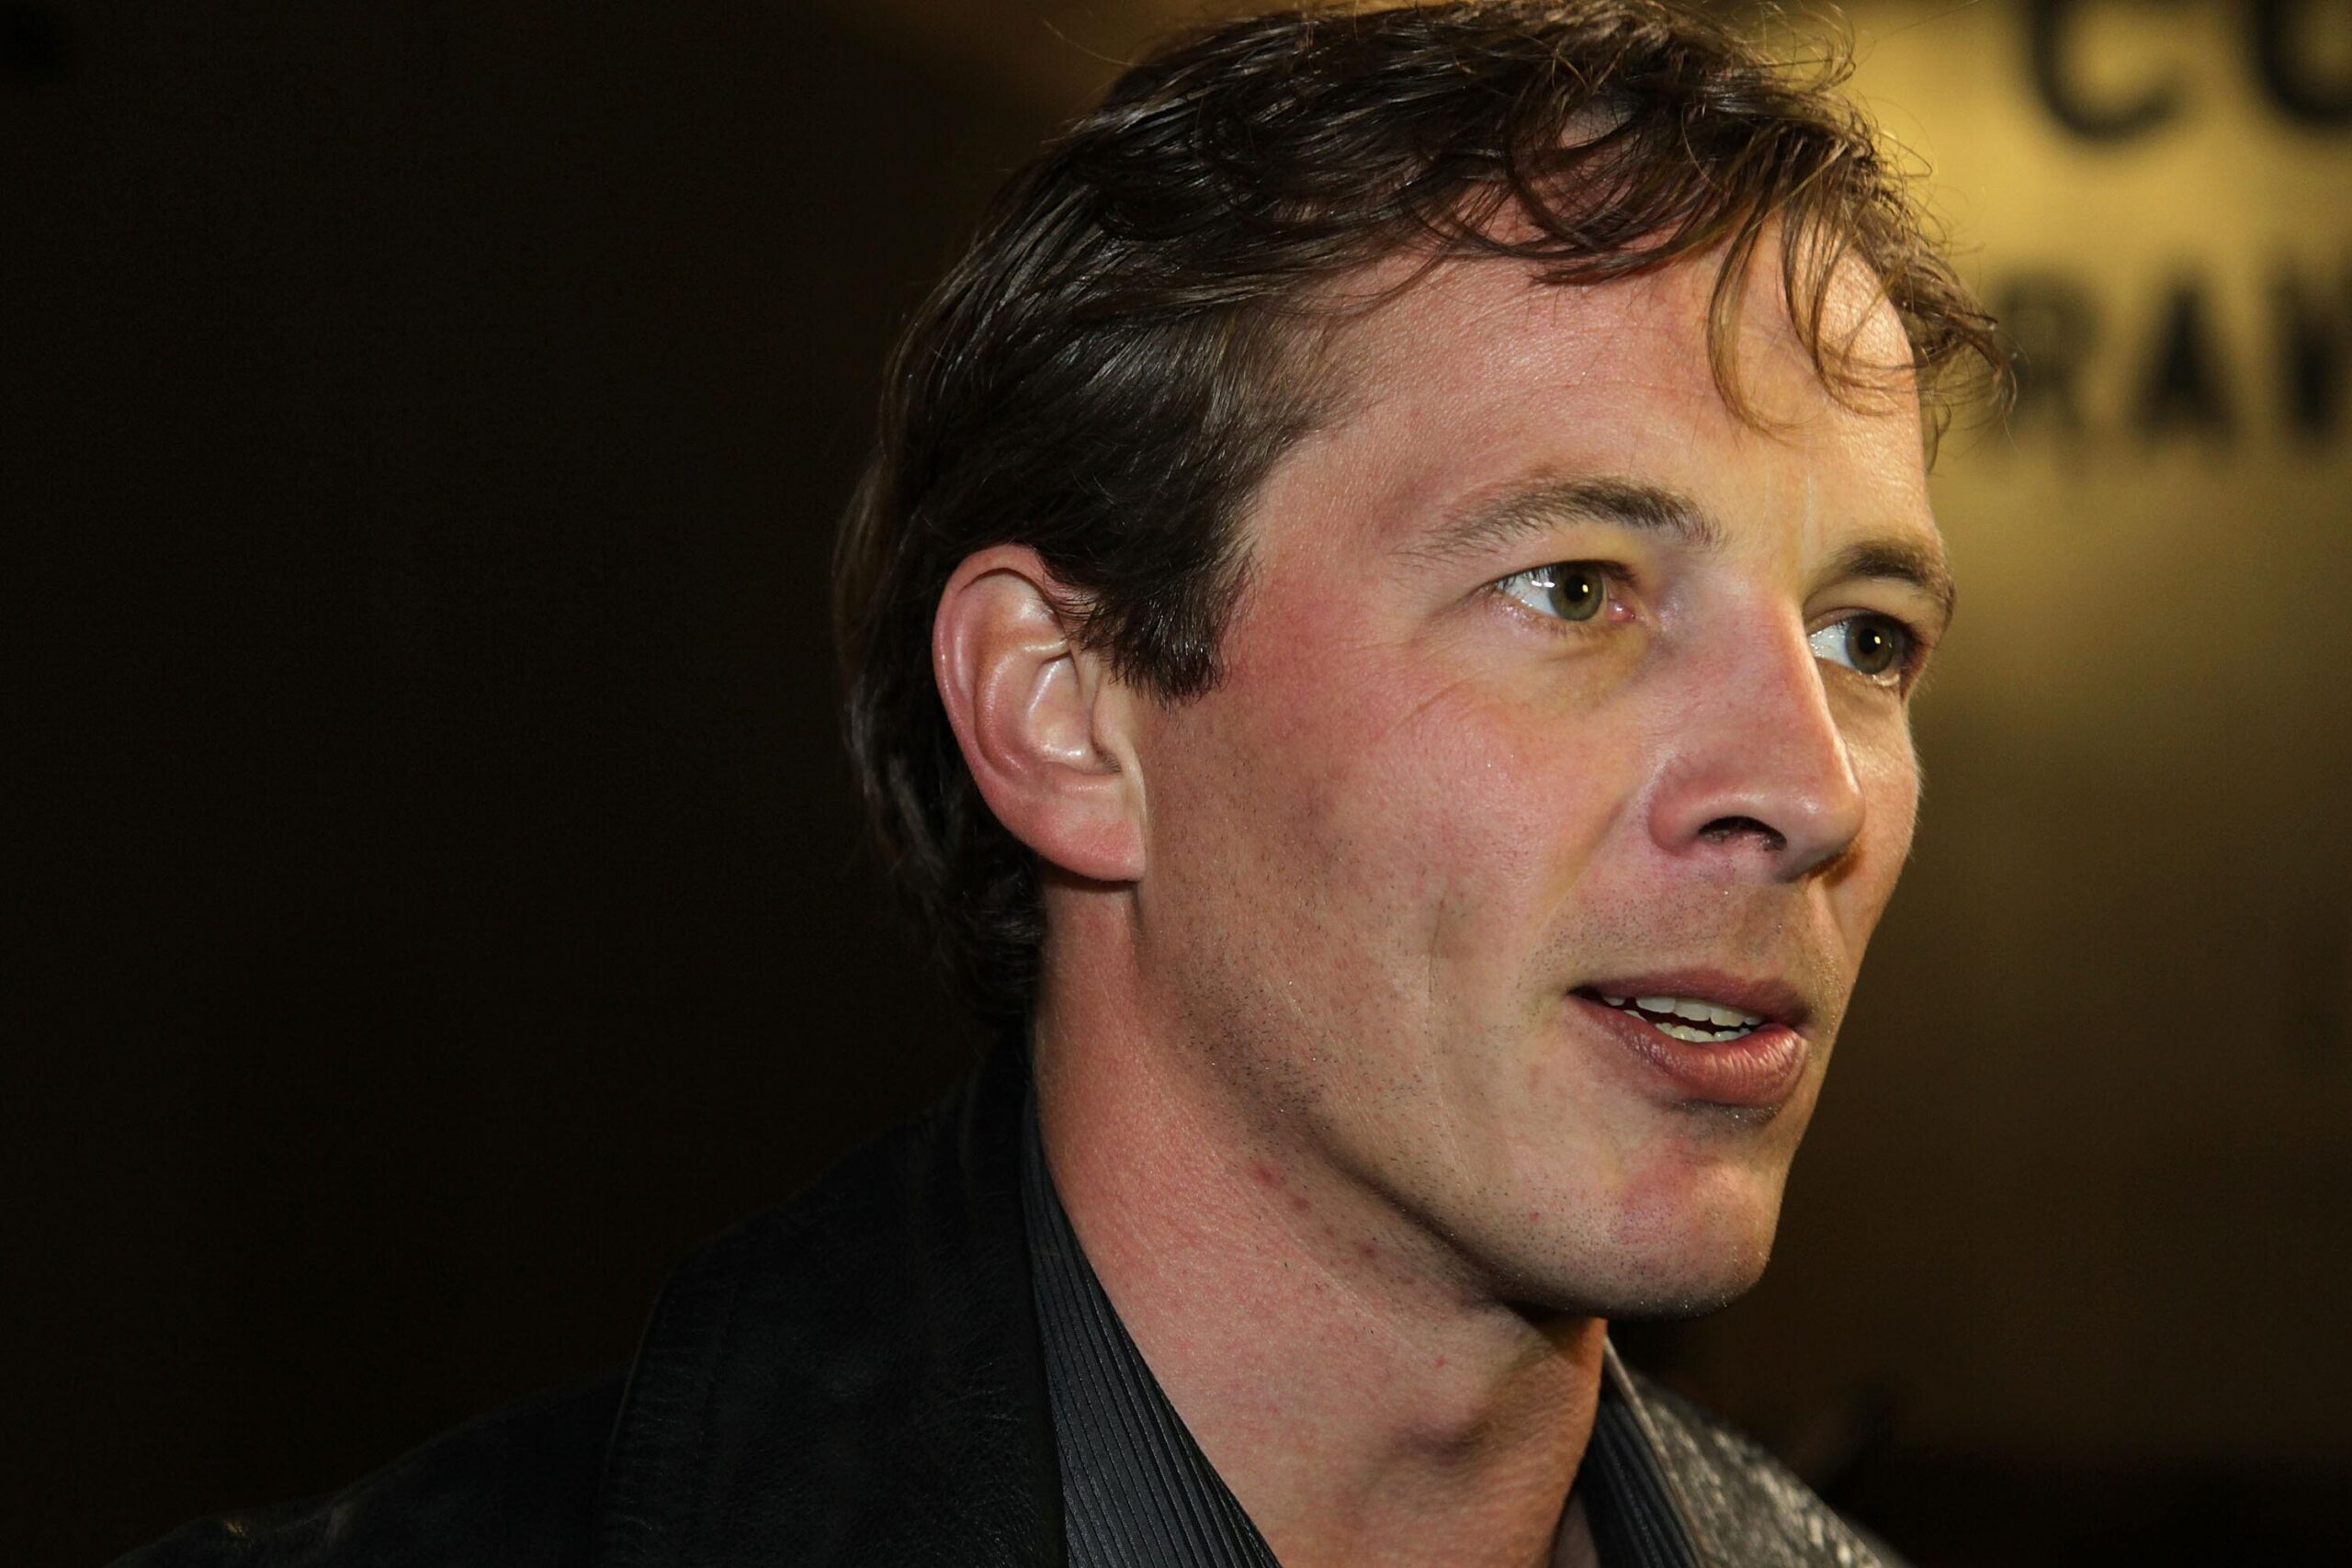 <i>Mike Flokis/WireImage/Gety Images</i><br/>Dieter Brummer was best known for playing Shane Parrish in